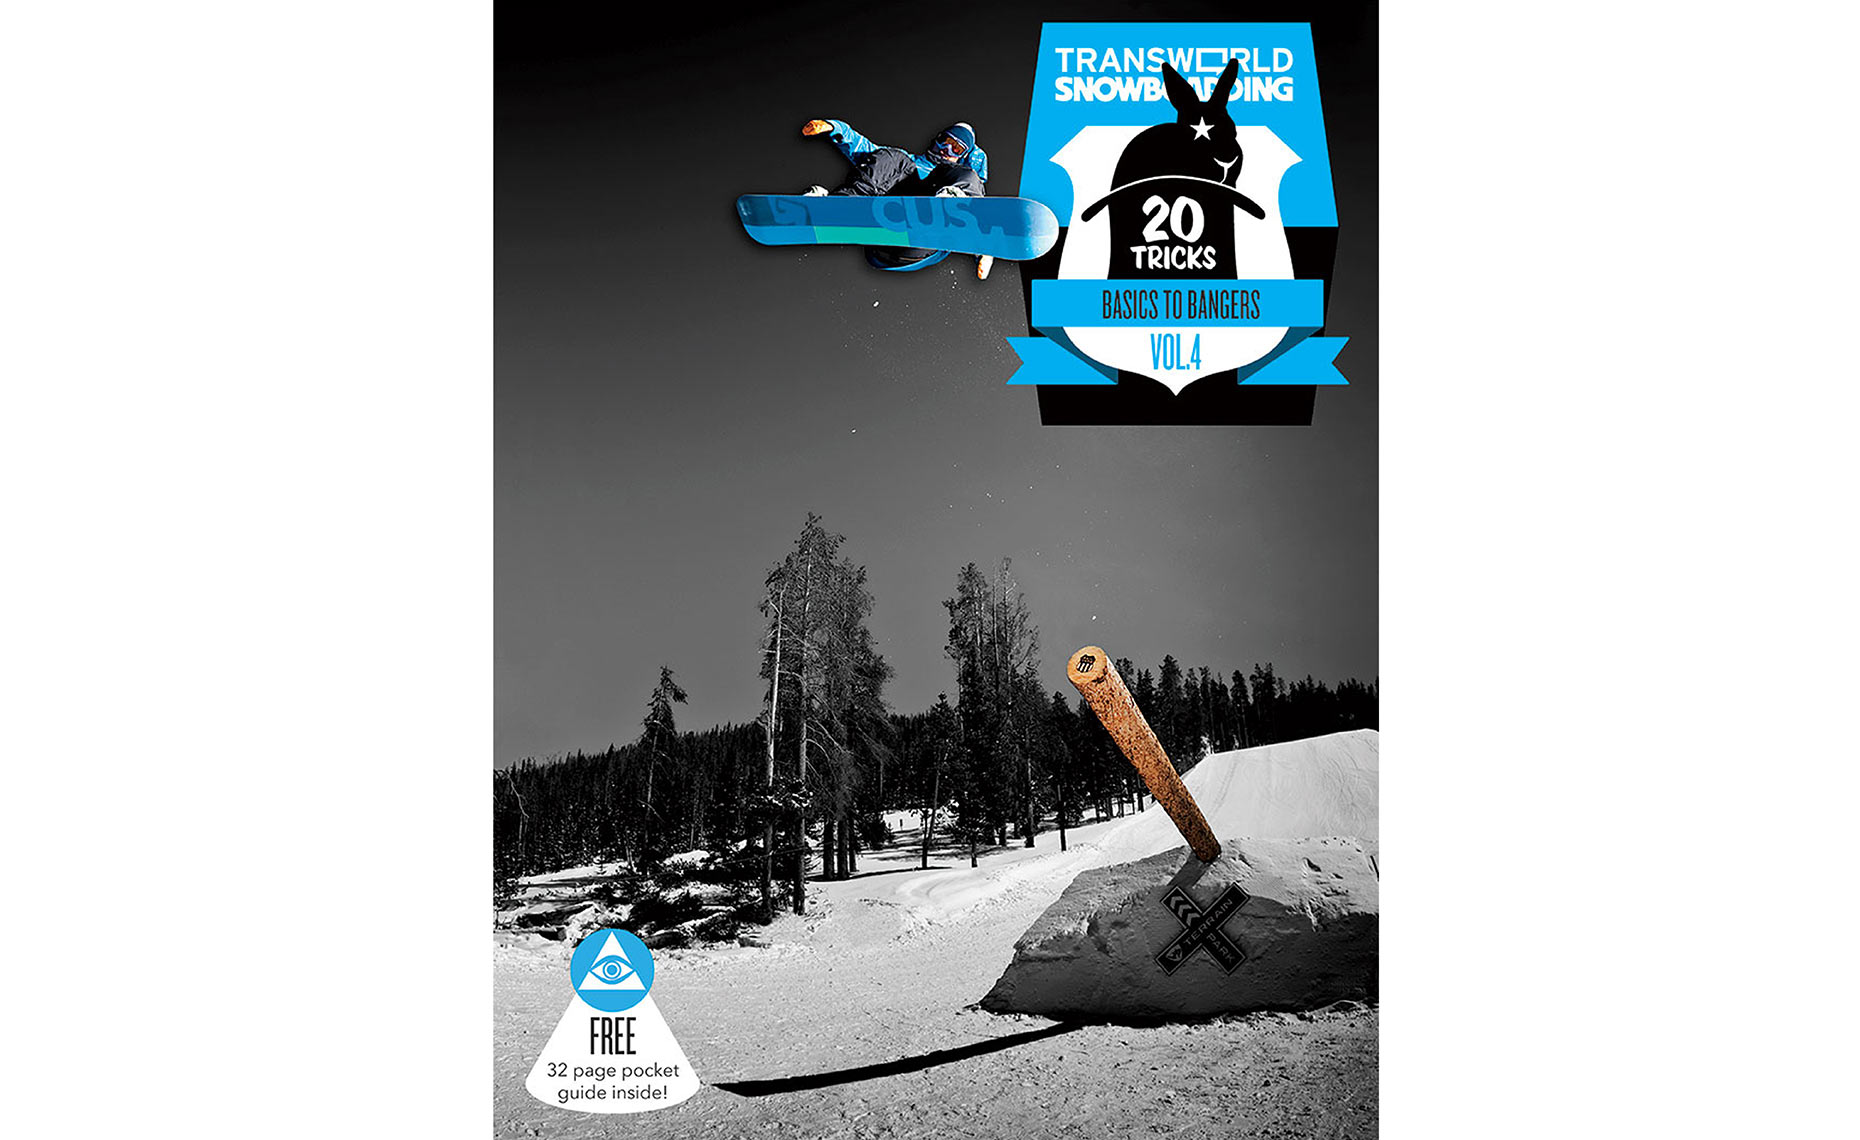 08-Marko-Grilc-TransWorld-SNOWboarding-Chris-Wellhausen